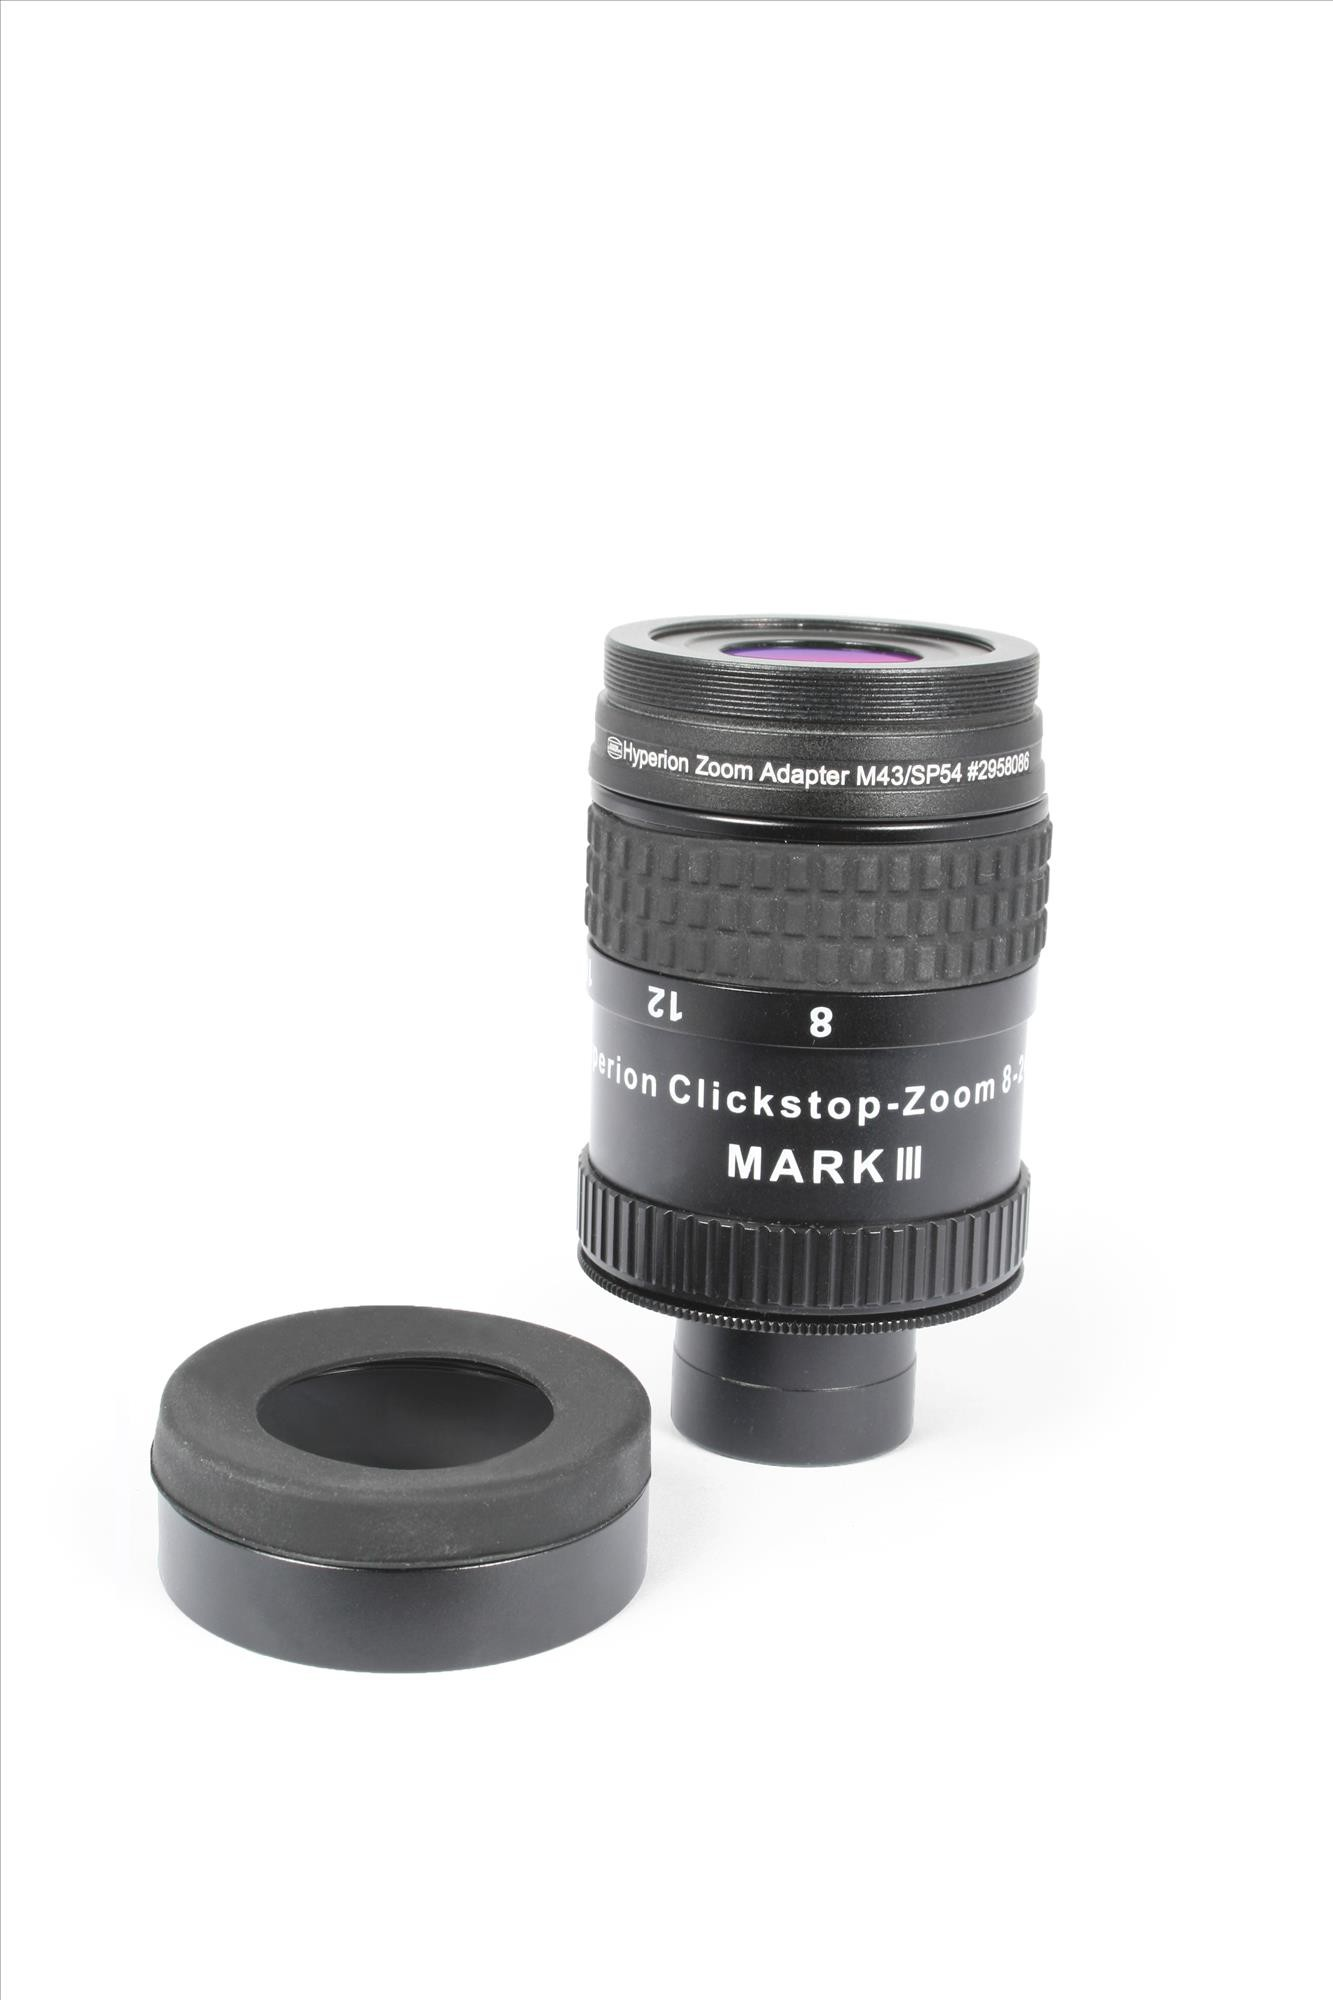 Application Image: Shows discontinued Mark III Zoom, works also with Mark IV Zoom